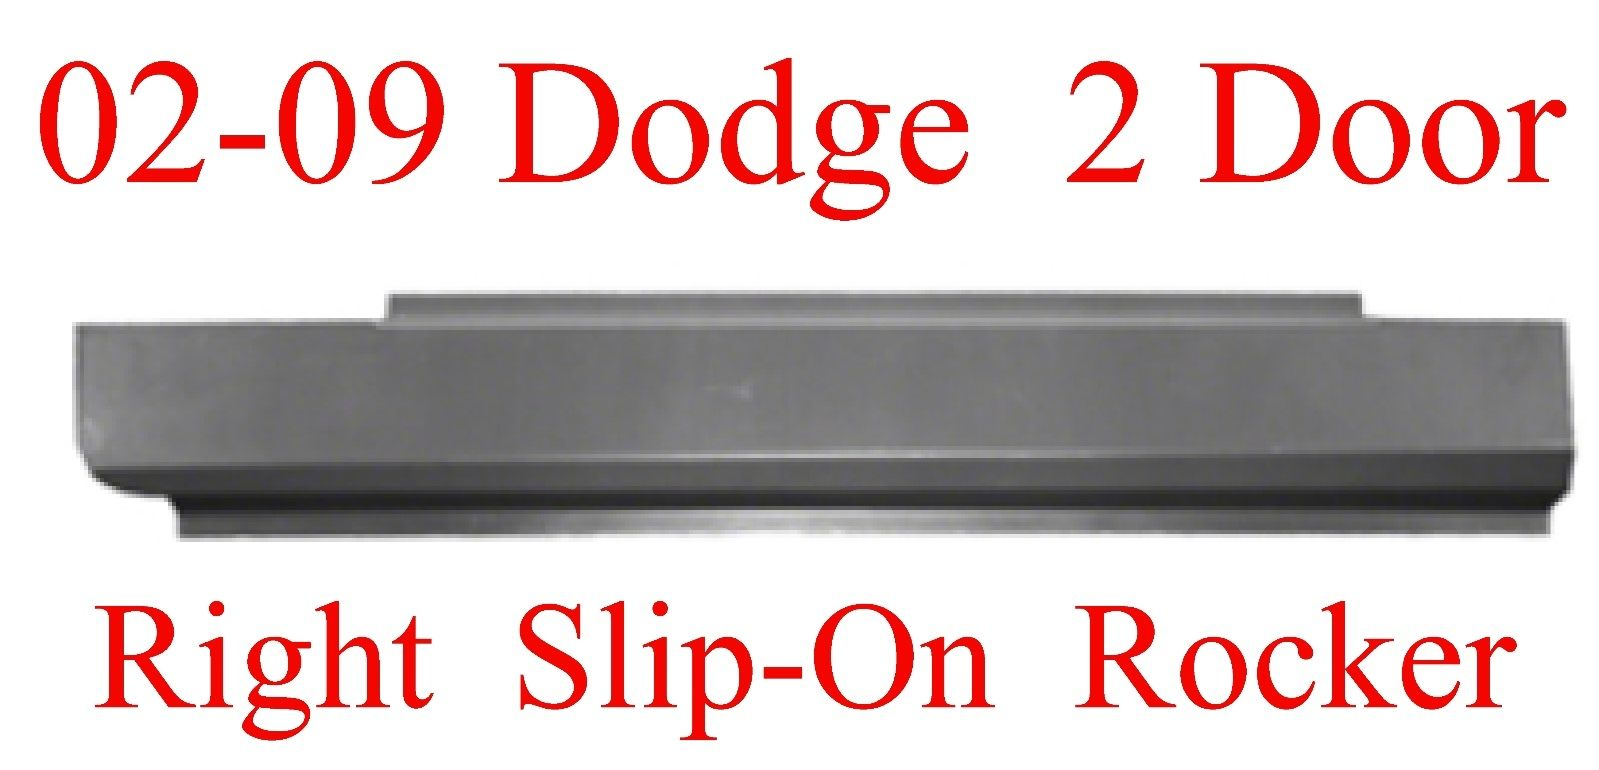 02-09 Dodge Right Slip-On Rocker Panel 2 Door